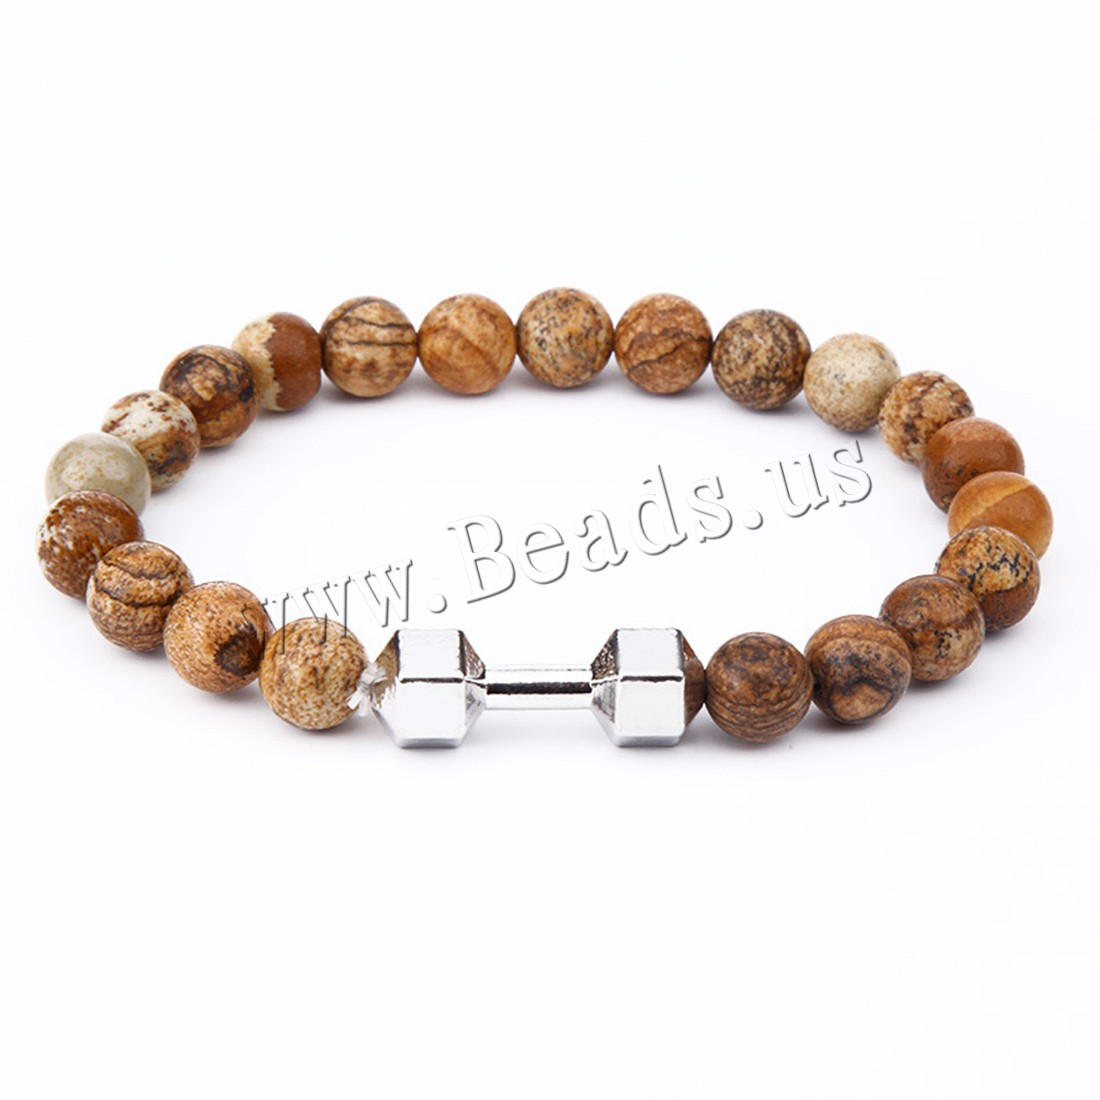 Buy Zinc Alloy Bracelet Picture Jasper plated Unisex colors choice 8mm Sold Per Approx 7.5 Inch Strand